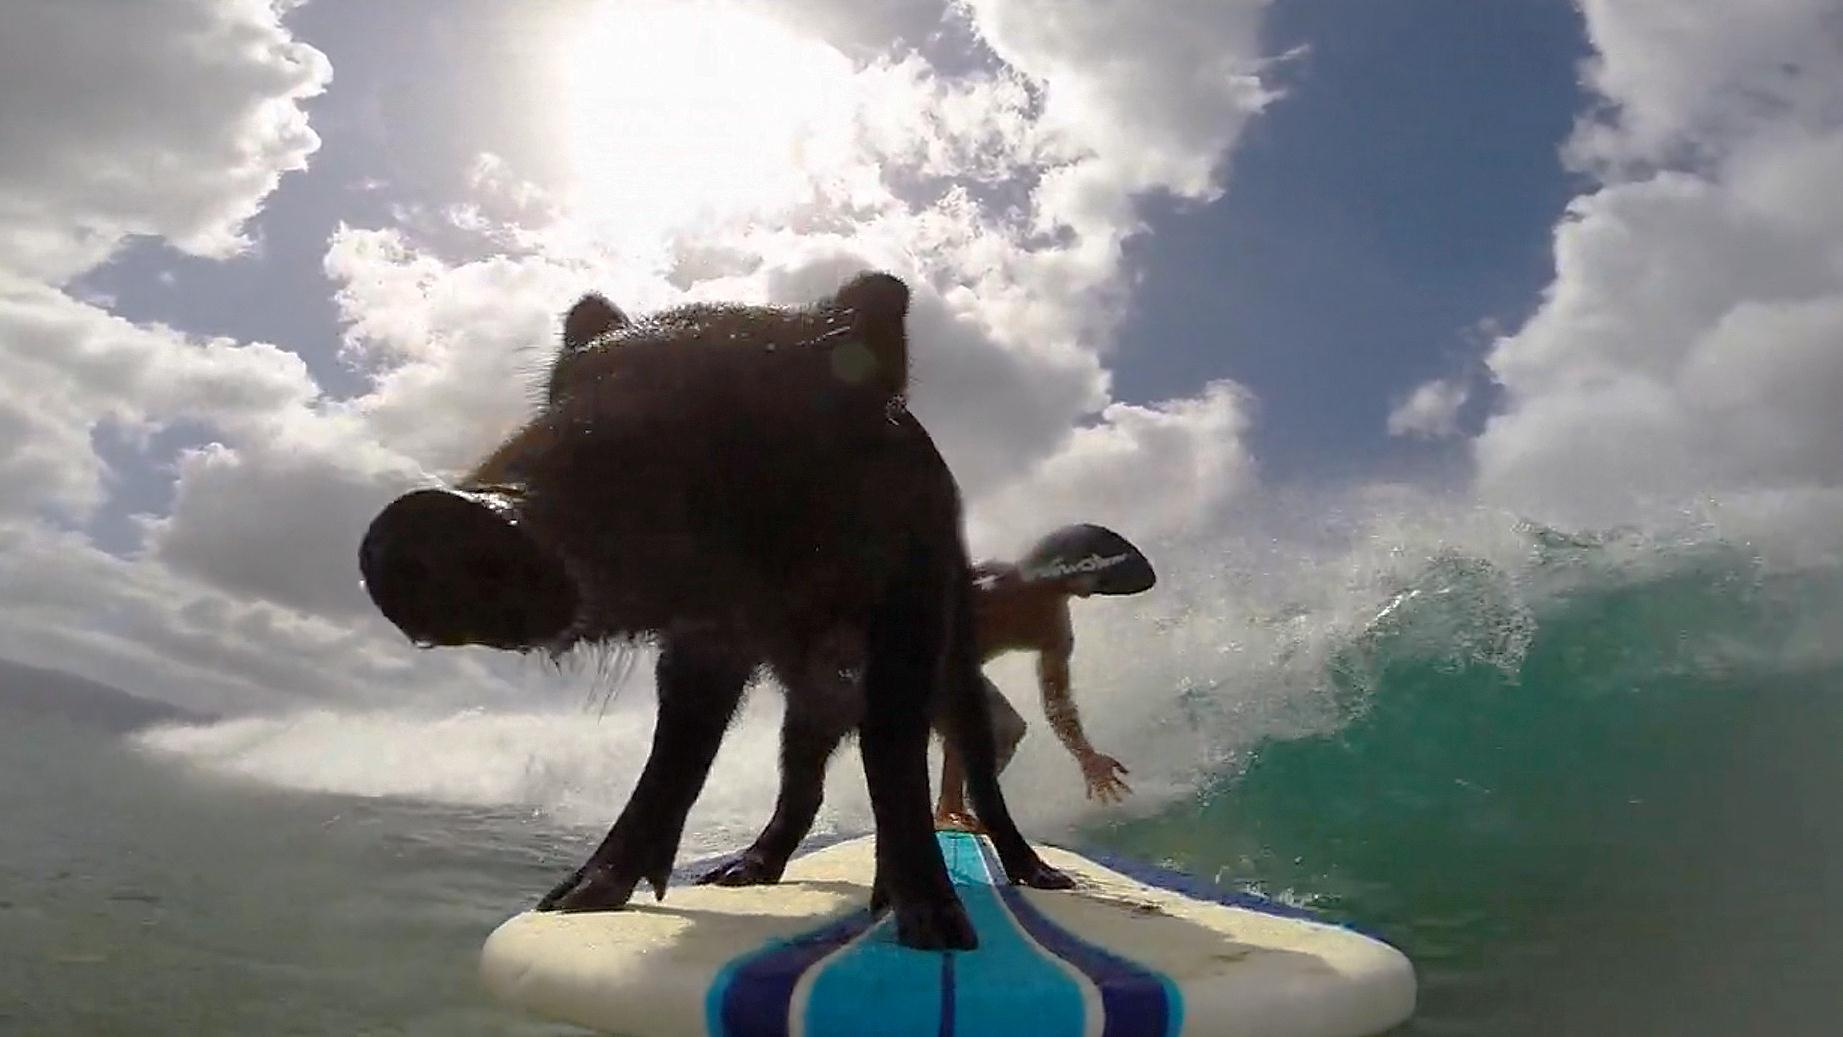 Image: GoPro cameras show Kama the pig, known as the mascot of Sandy Beach, riding waves with his owner Kai Holt.